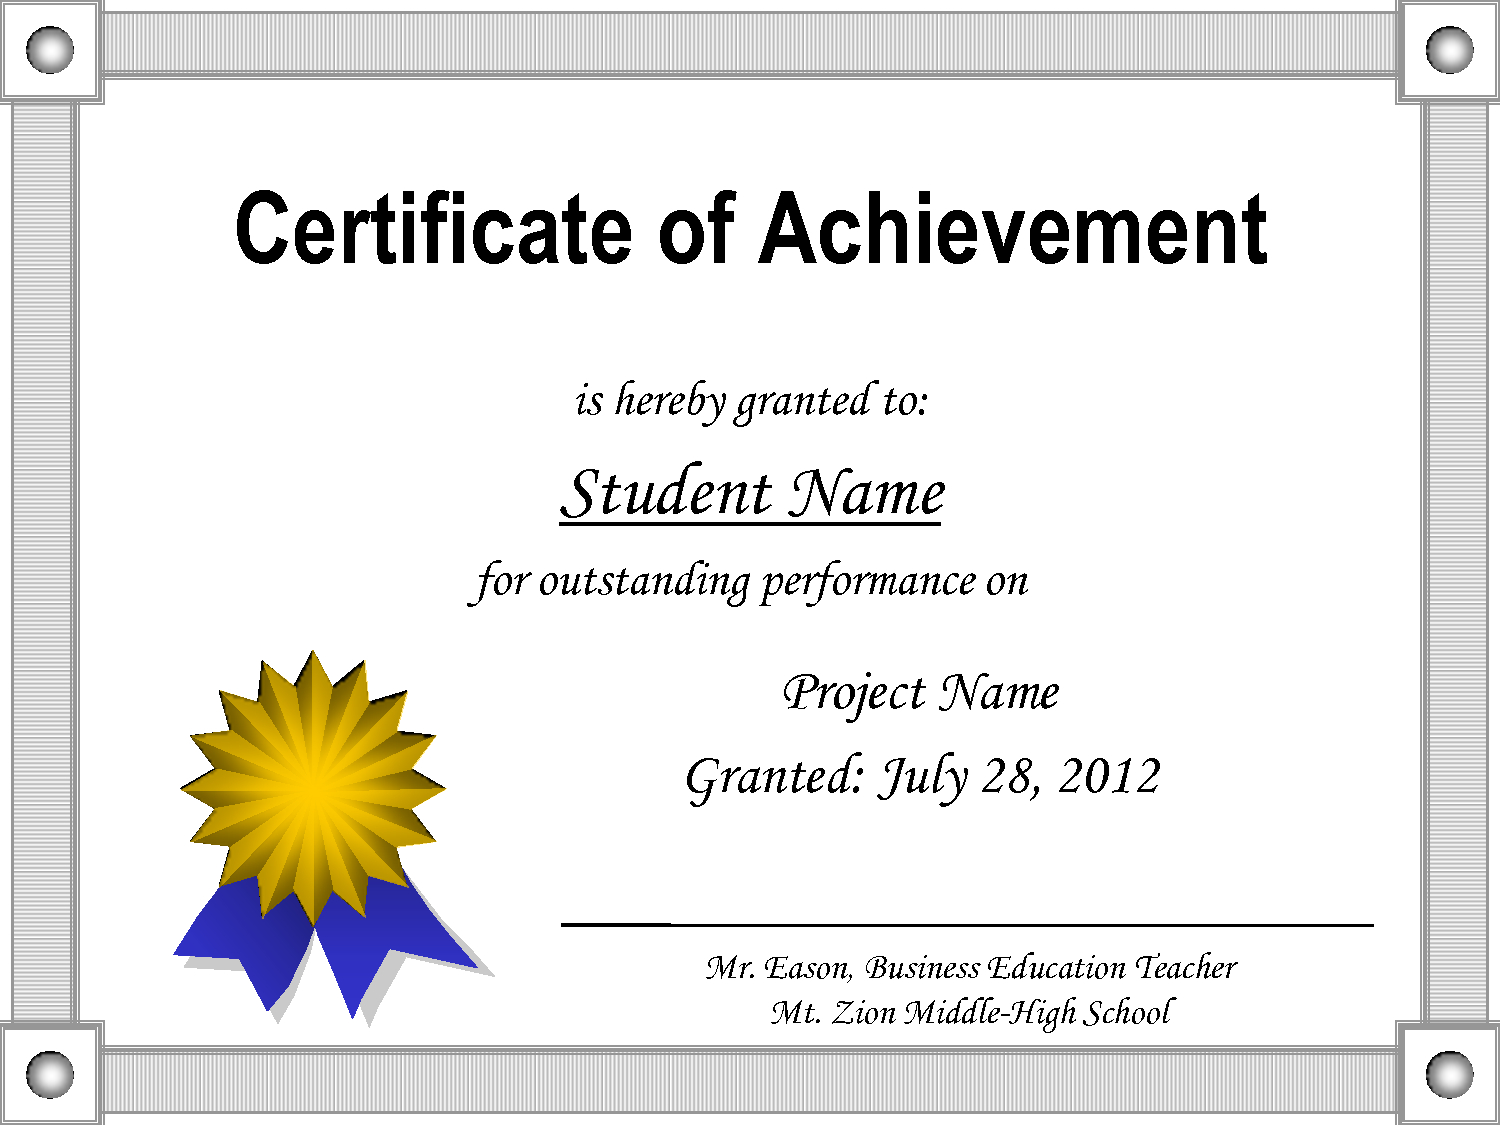 Achievement Certificate Template Free - Cerescoffee.co Within Award Certificate Templates Word 2007